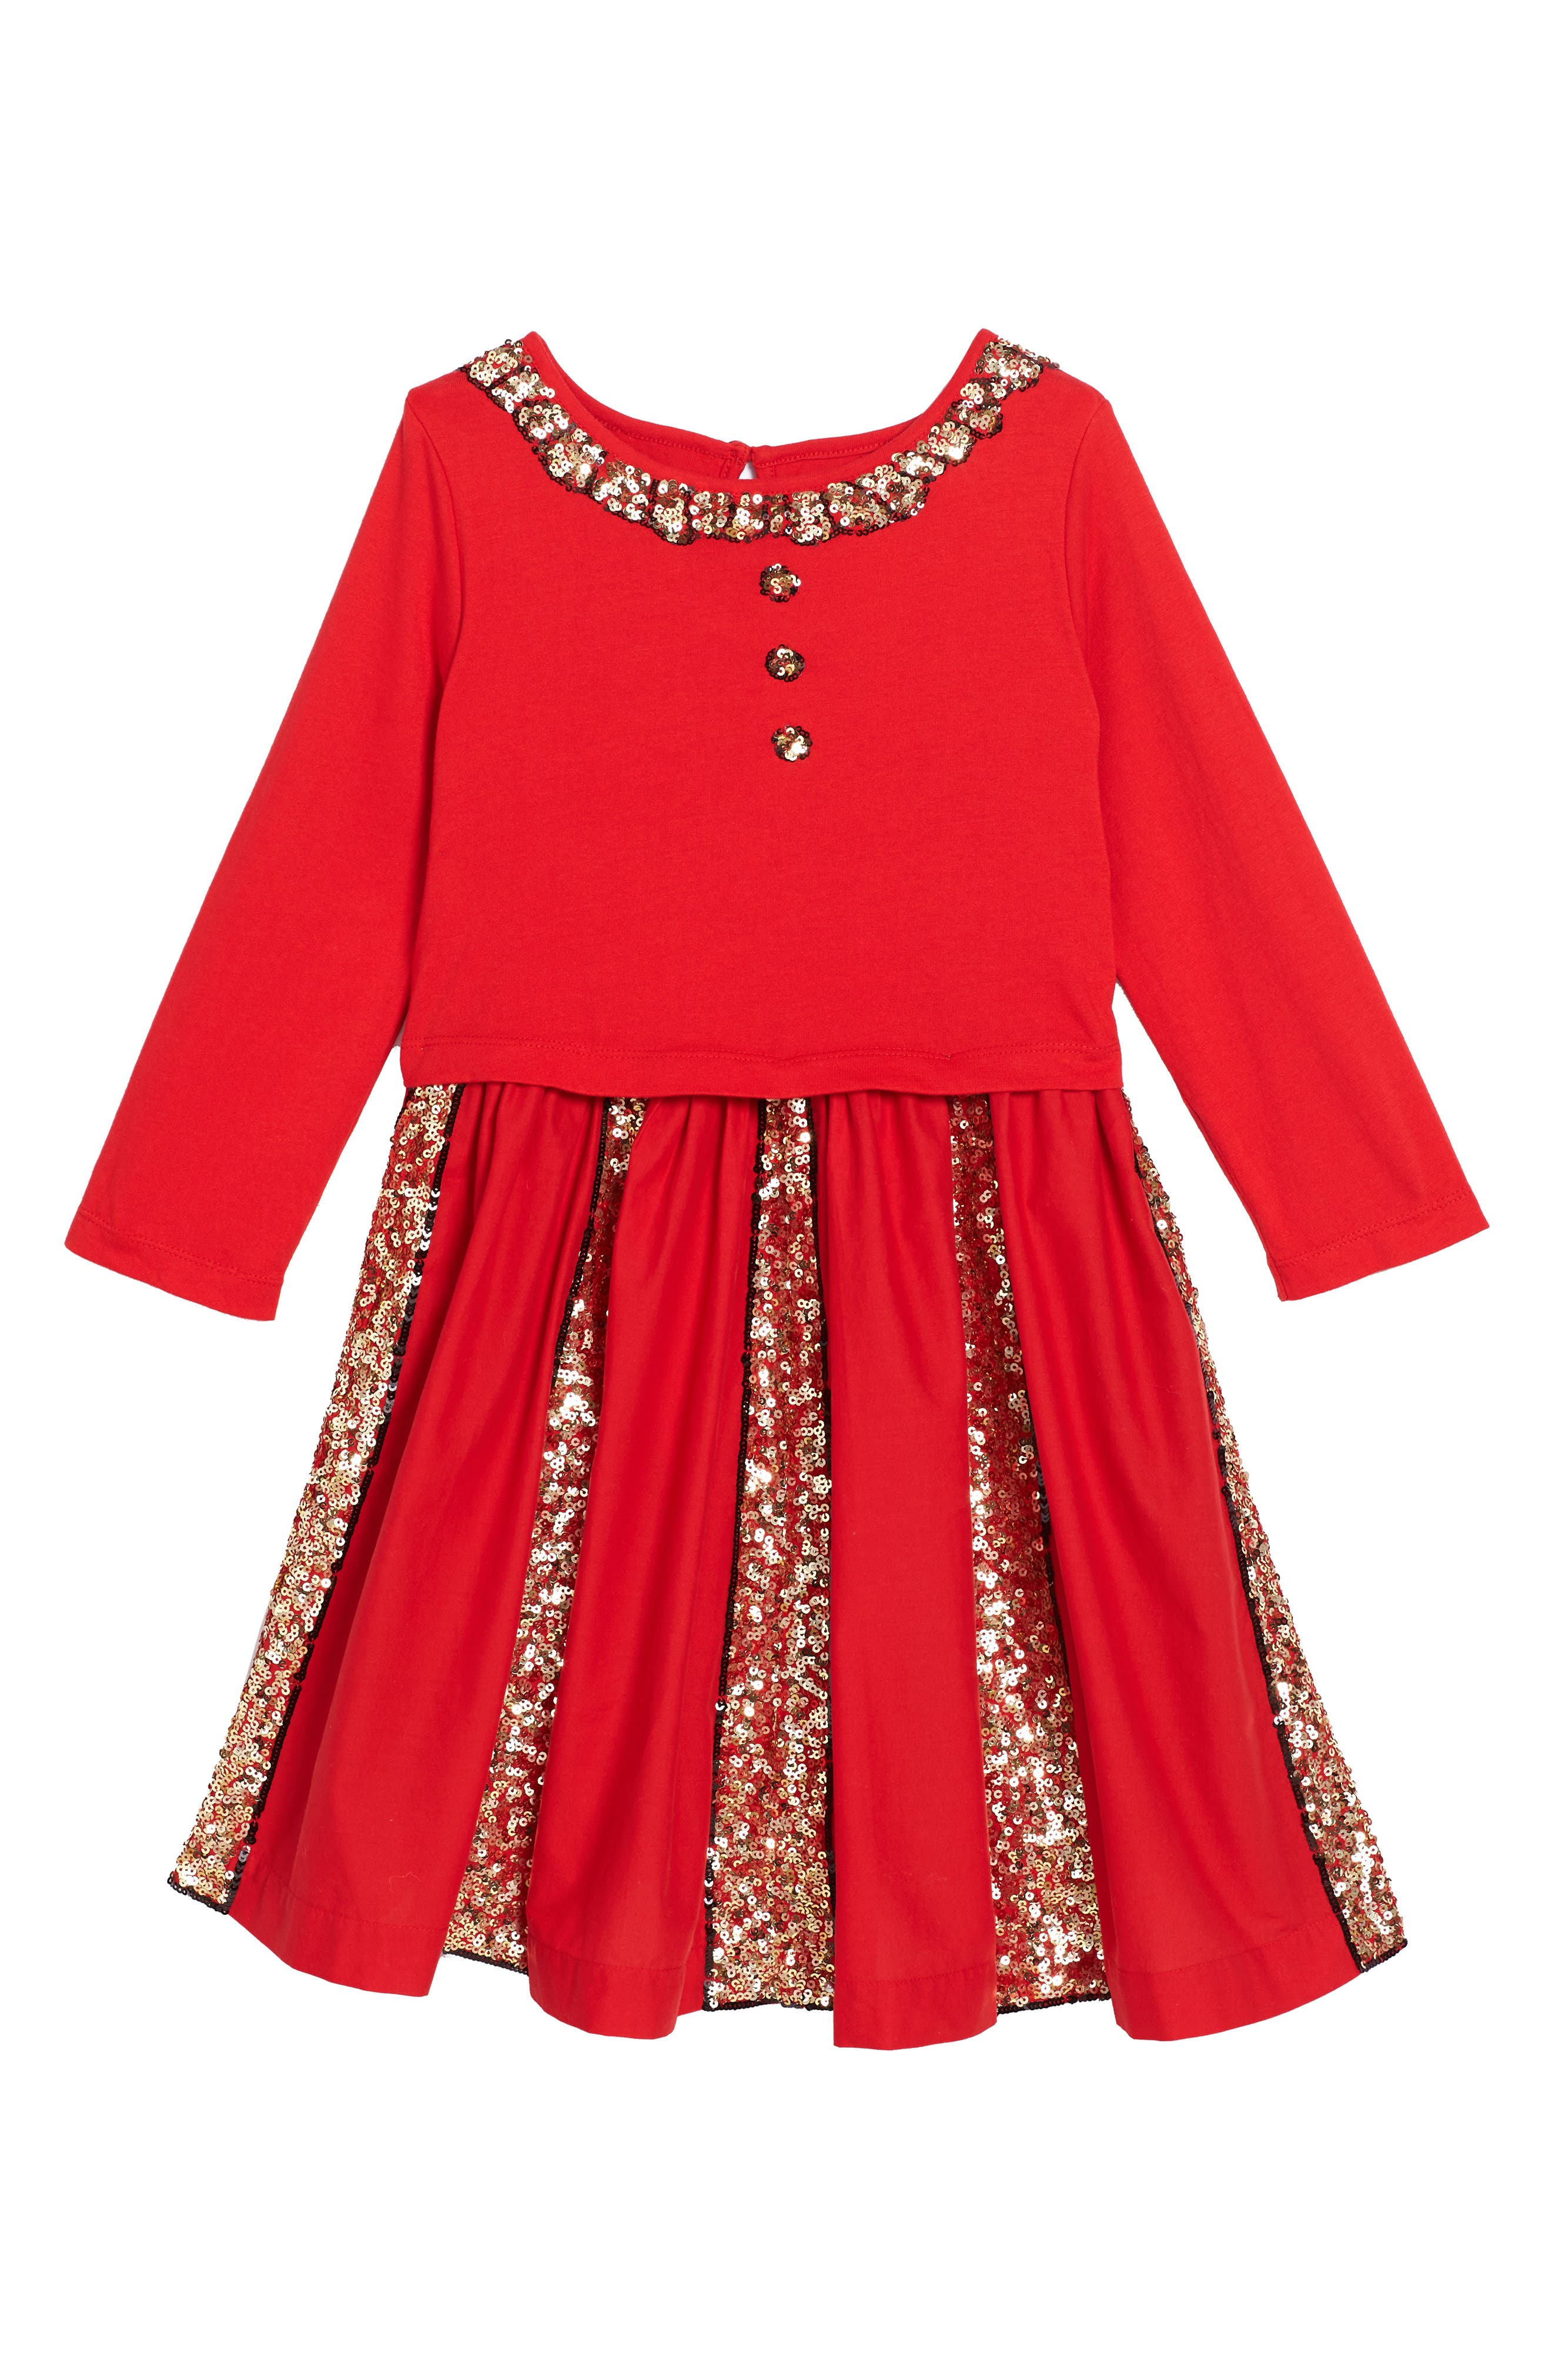 Sequin Skater Dress,                             Main thumbnail 1, color,                             Ladybird Red Red